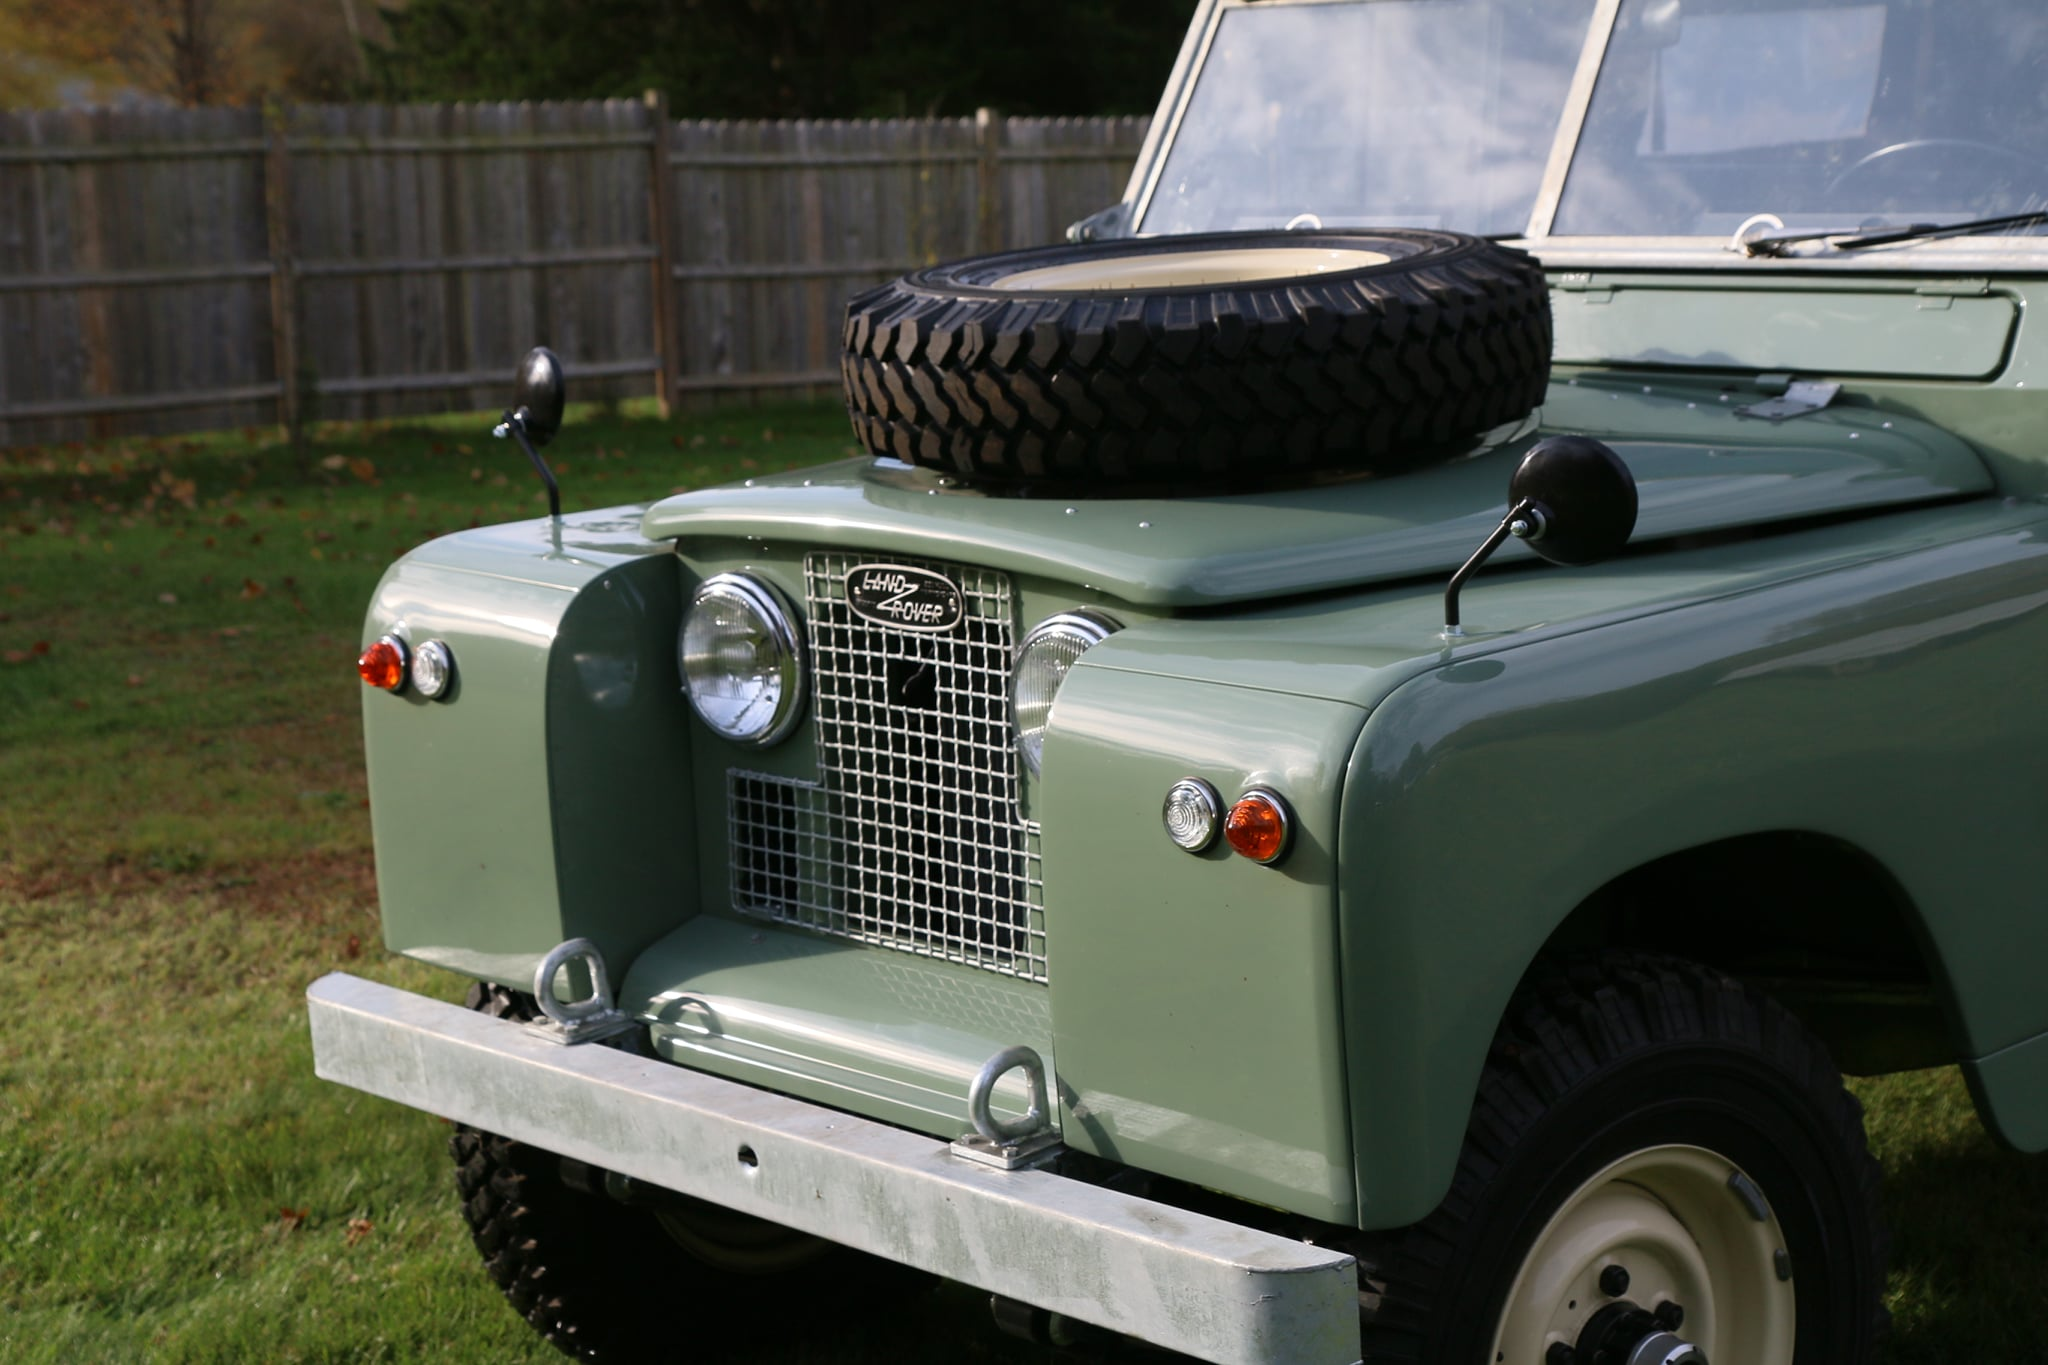 1965 Land Rover Series IIA Pastel Green Photo 7